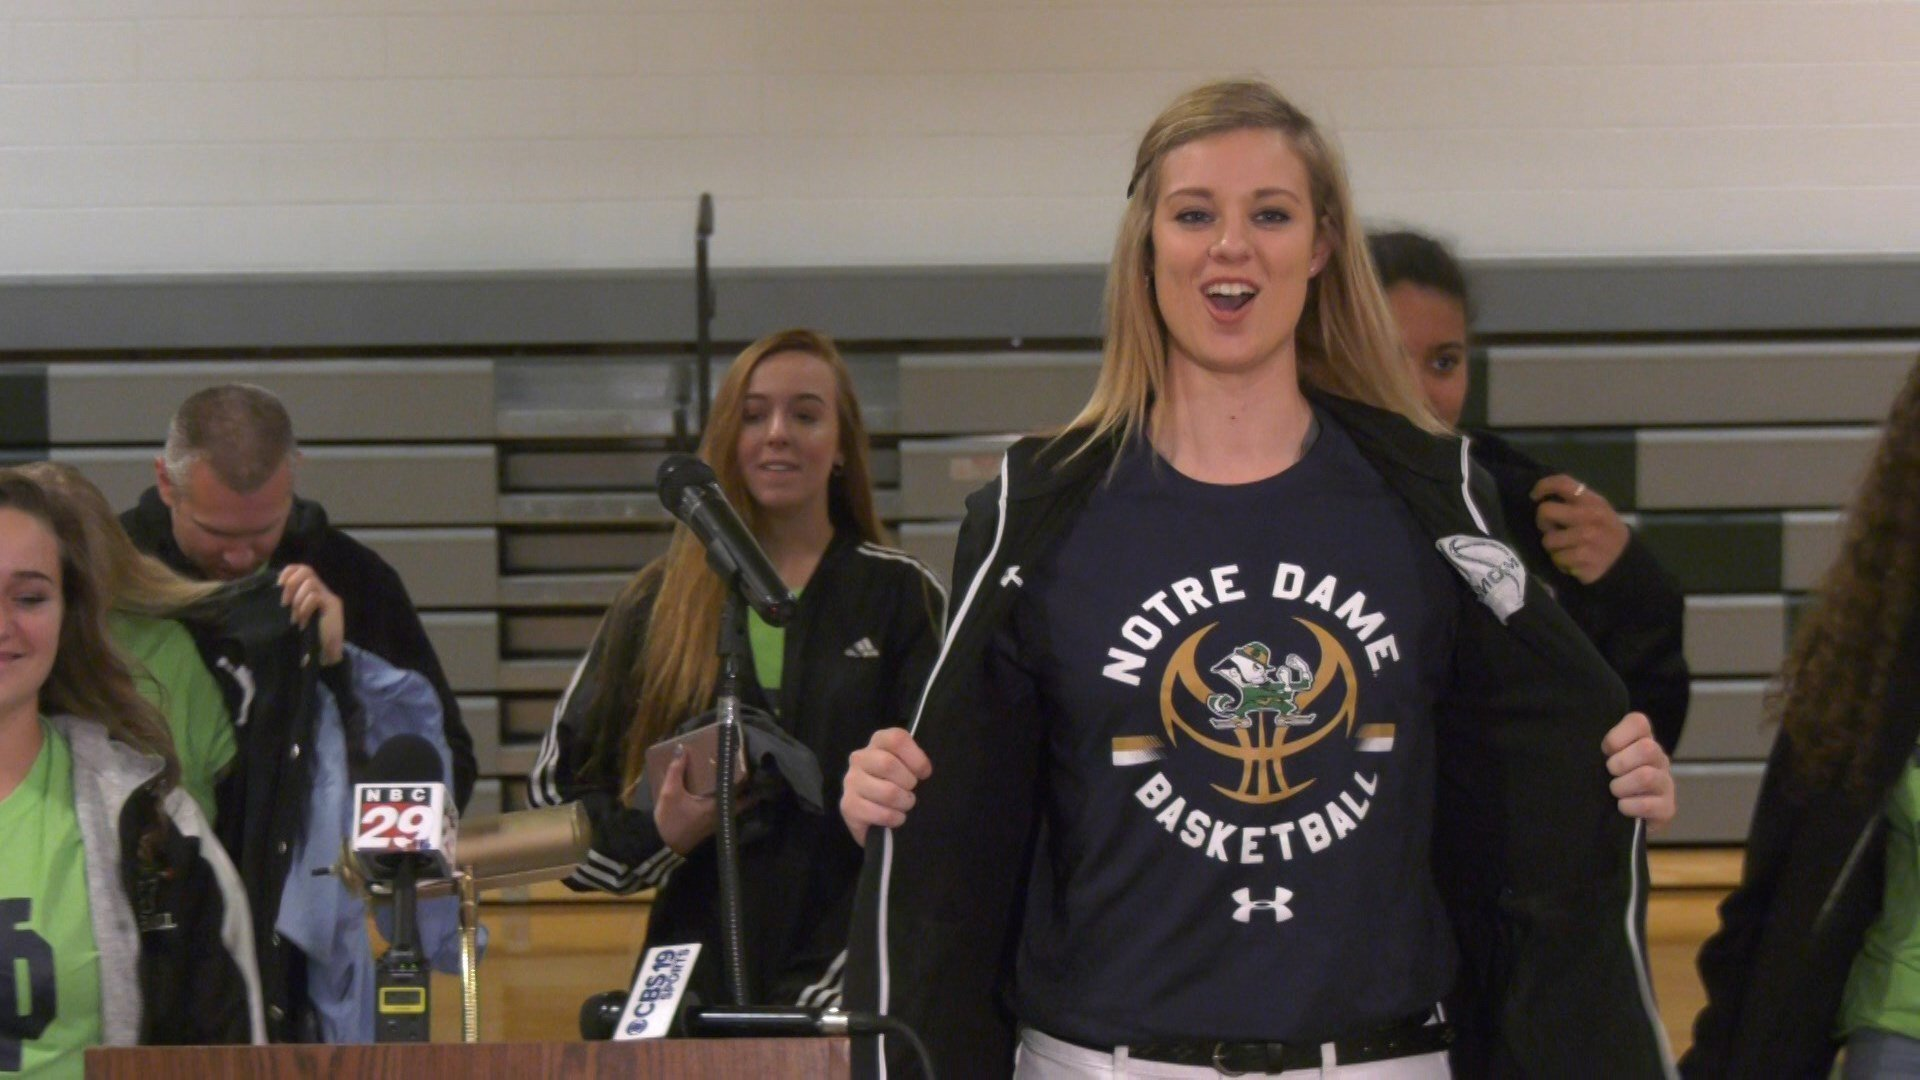 Sam Brunelle reveals that she will play college basketball at Notre Dame